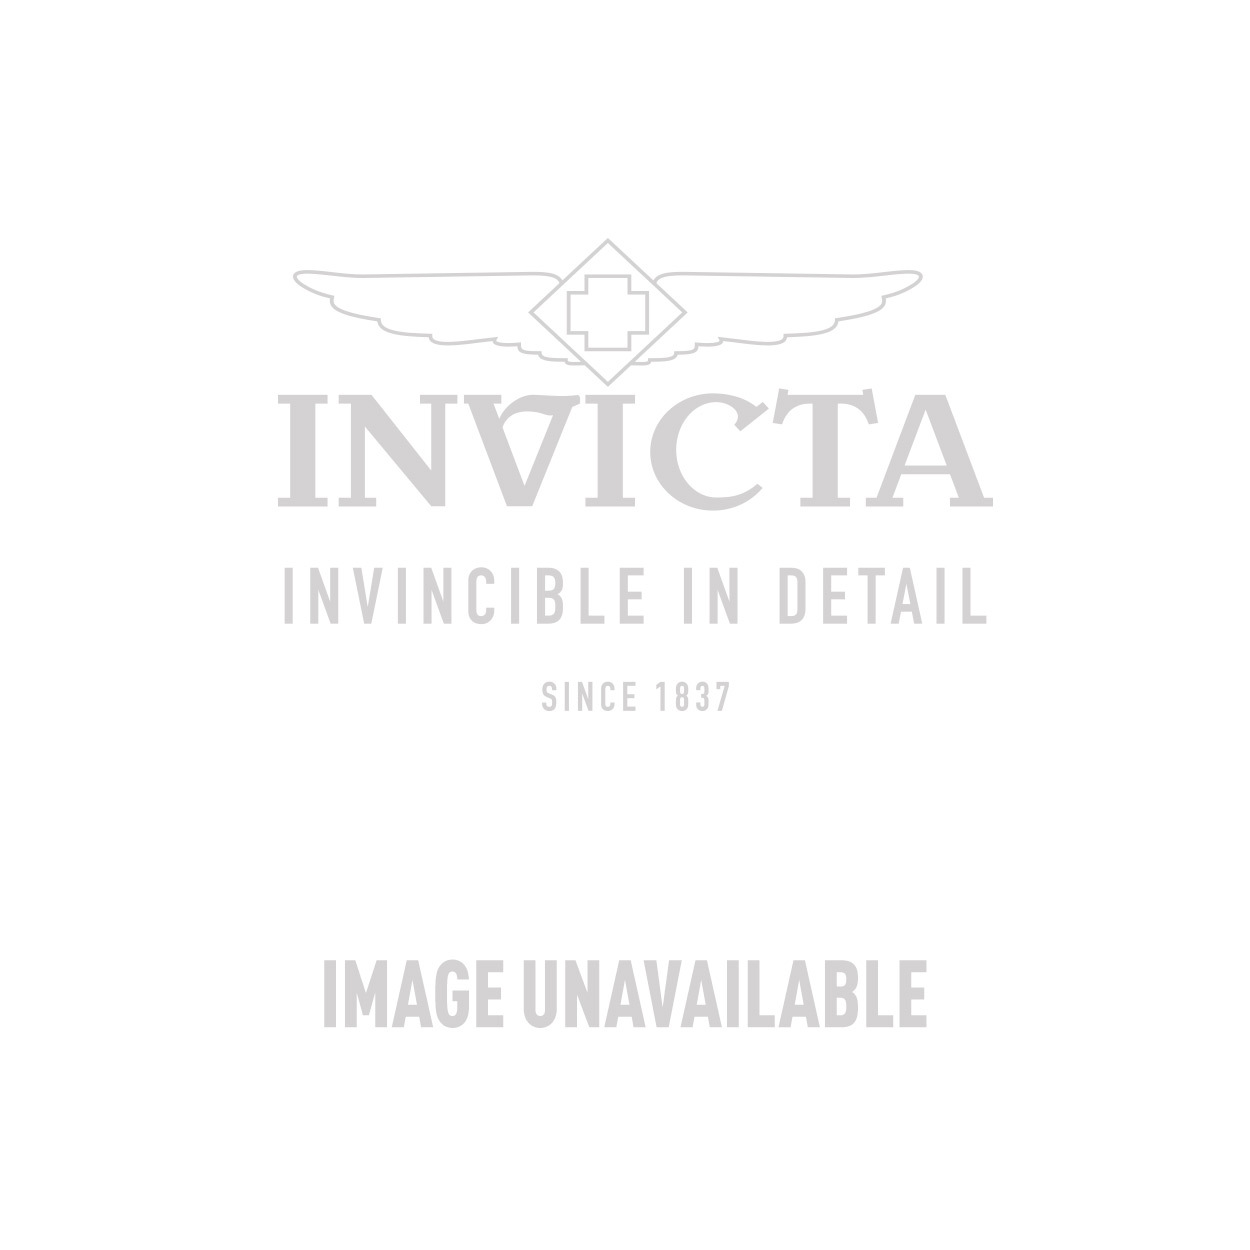 Invicta Angel Swiss Movement Quartz Watch - Stainless Steel case Stainless Steel band - Model 0457